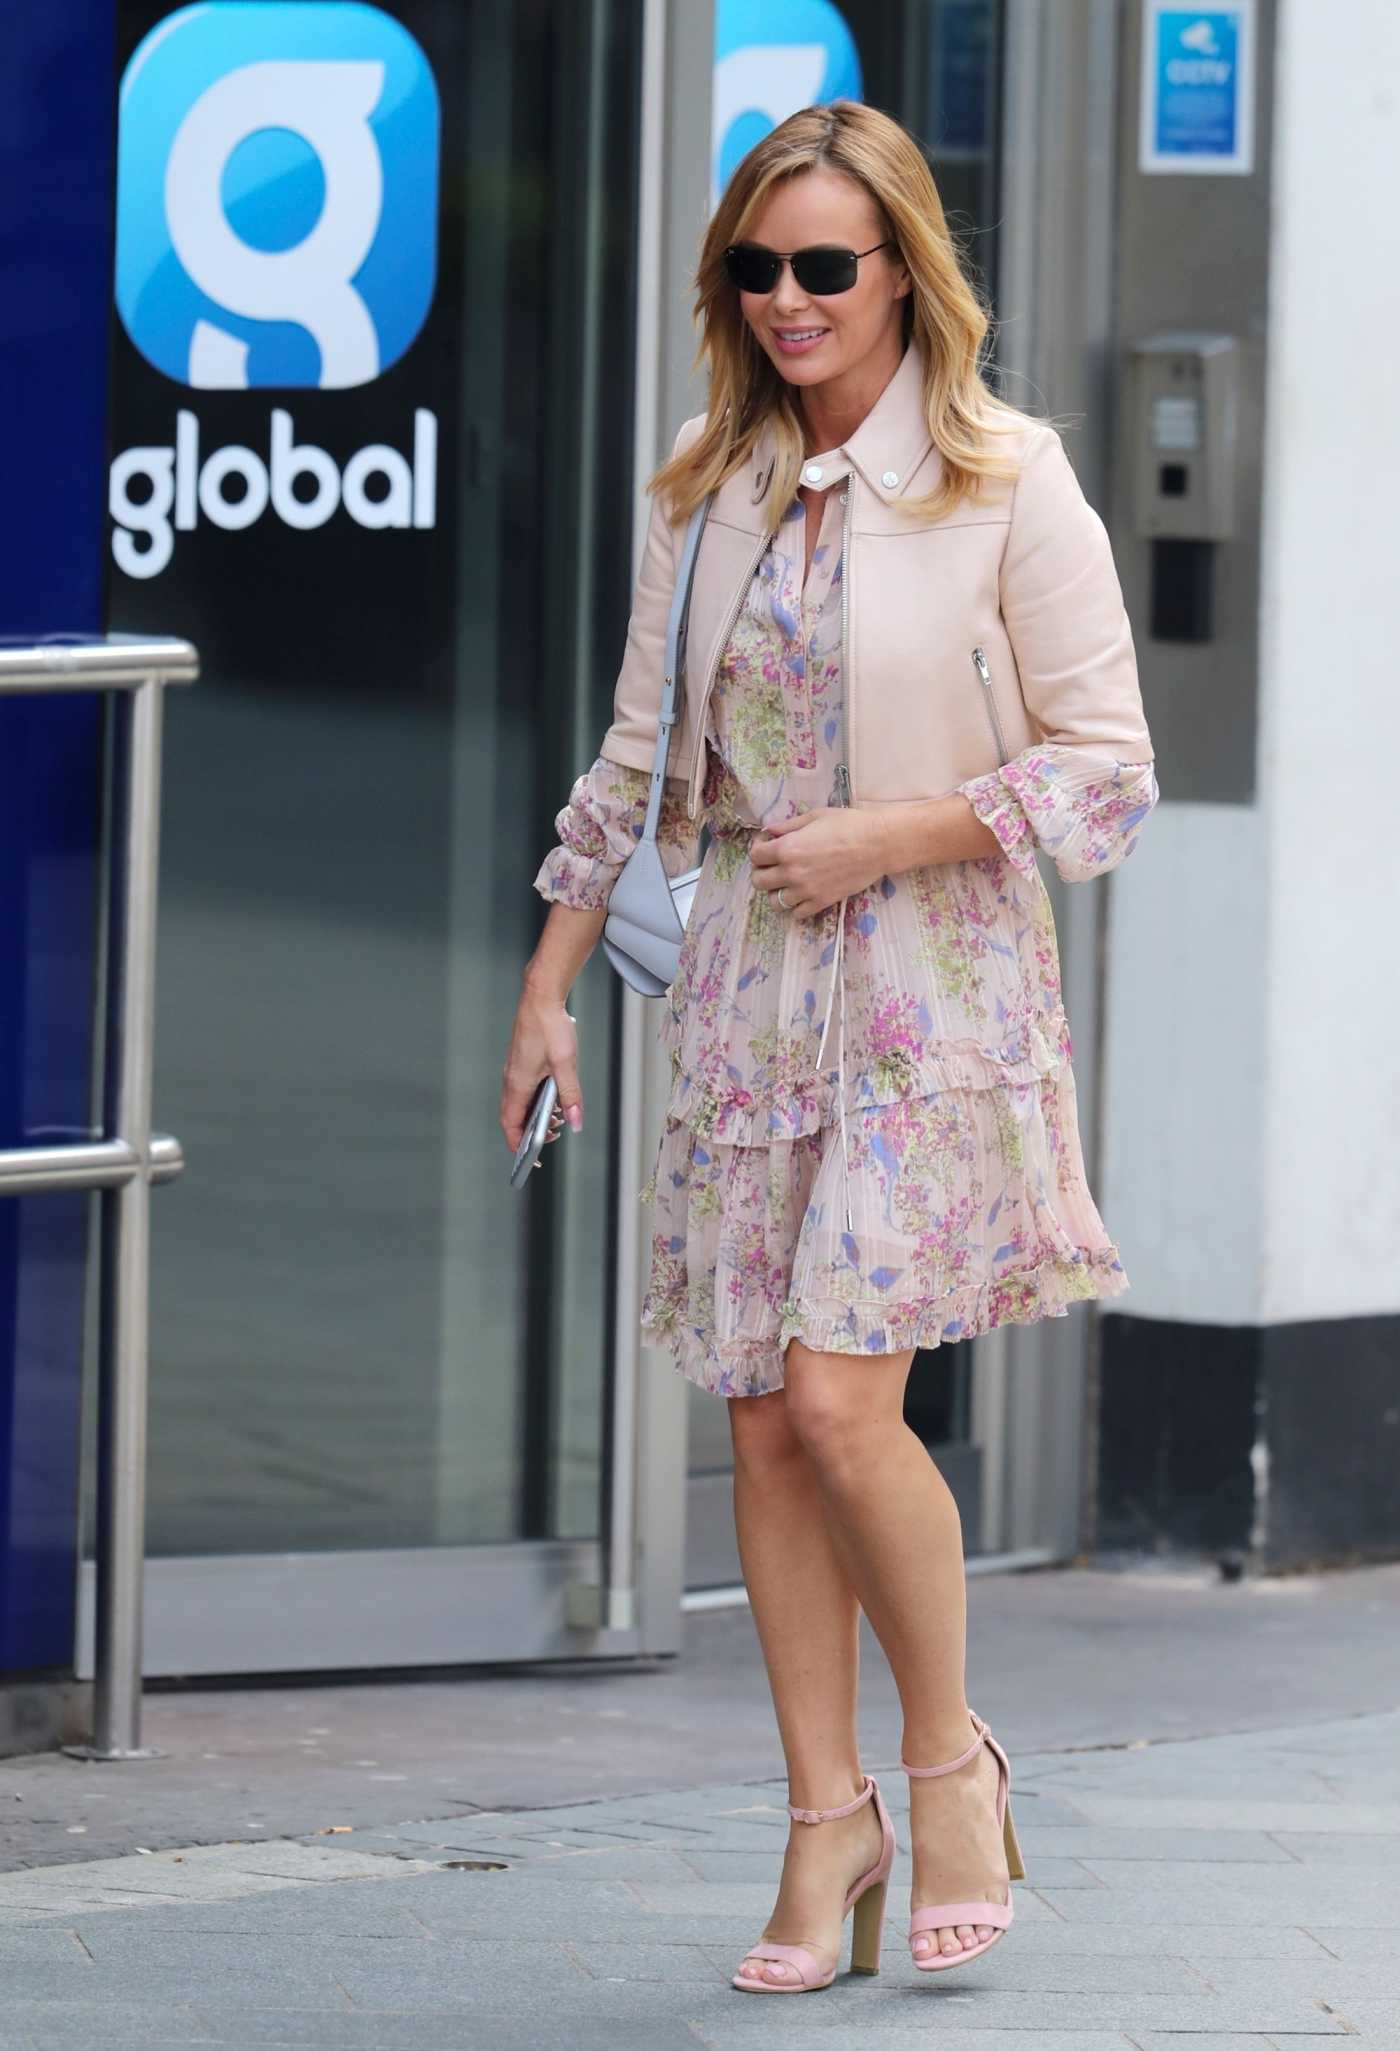 Amanda Holden in a Beige Floral Dress Leaves the Global Radio in London 04/08/2020